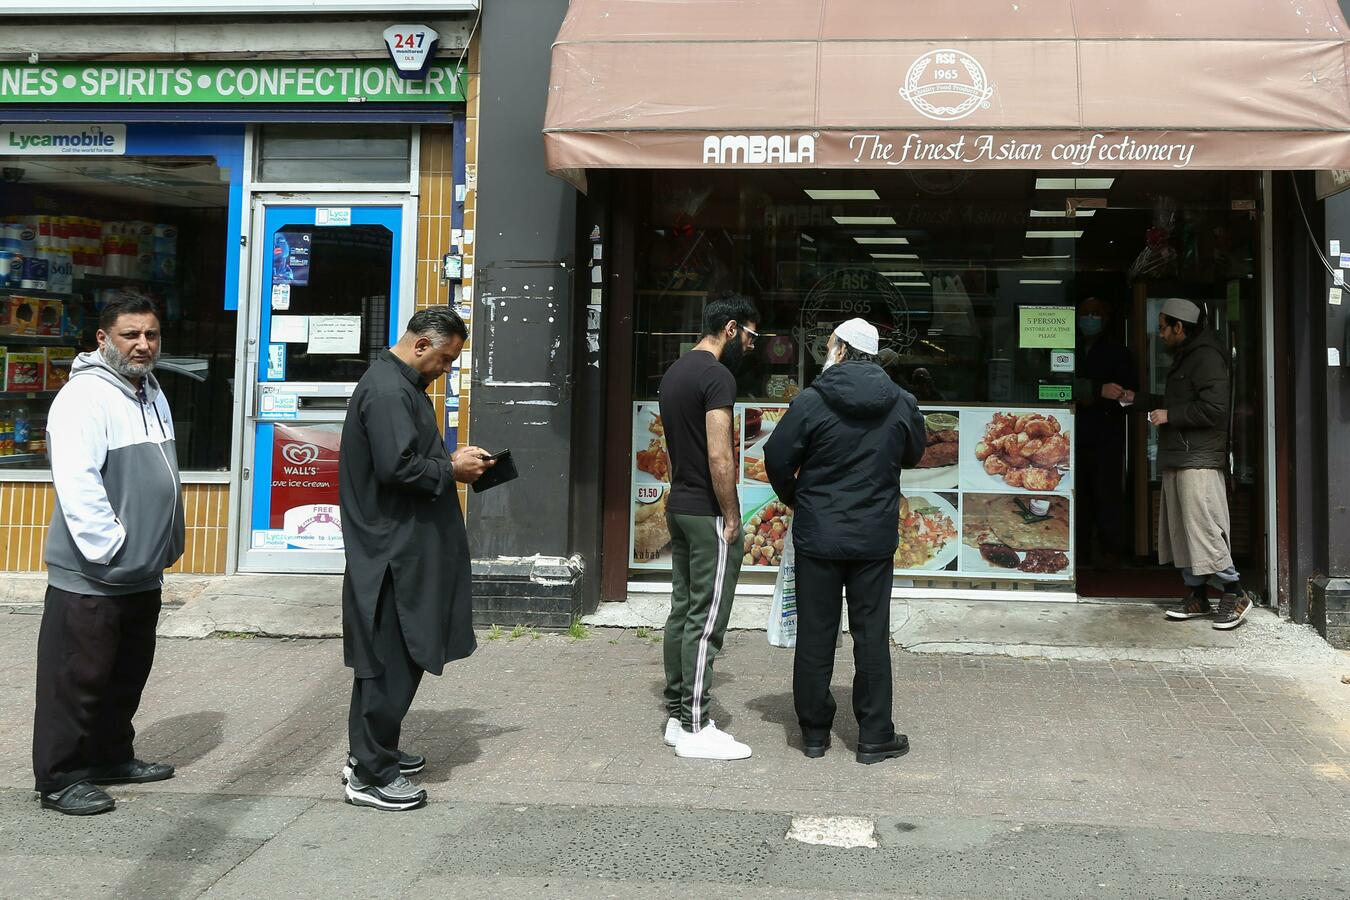 Birmingham, 23 May: People from BAME communities are more likely to live in poorer areas. Photo: Pet